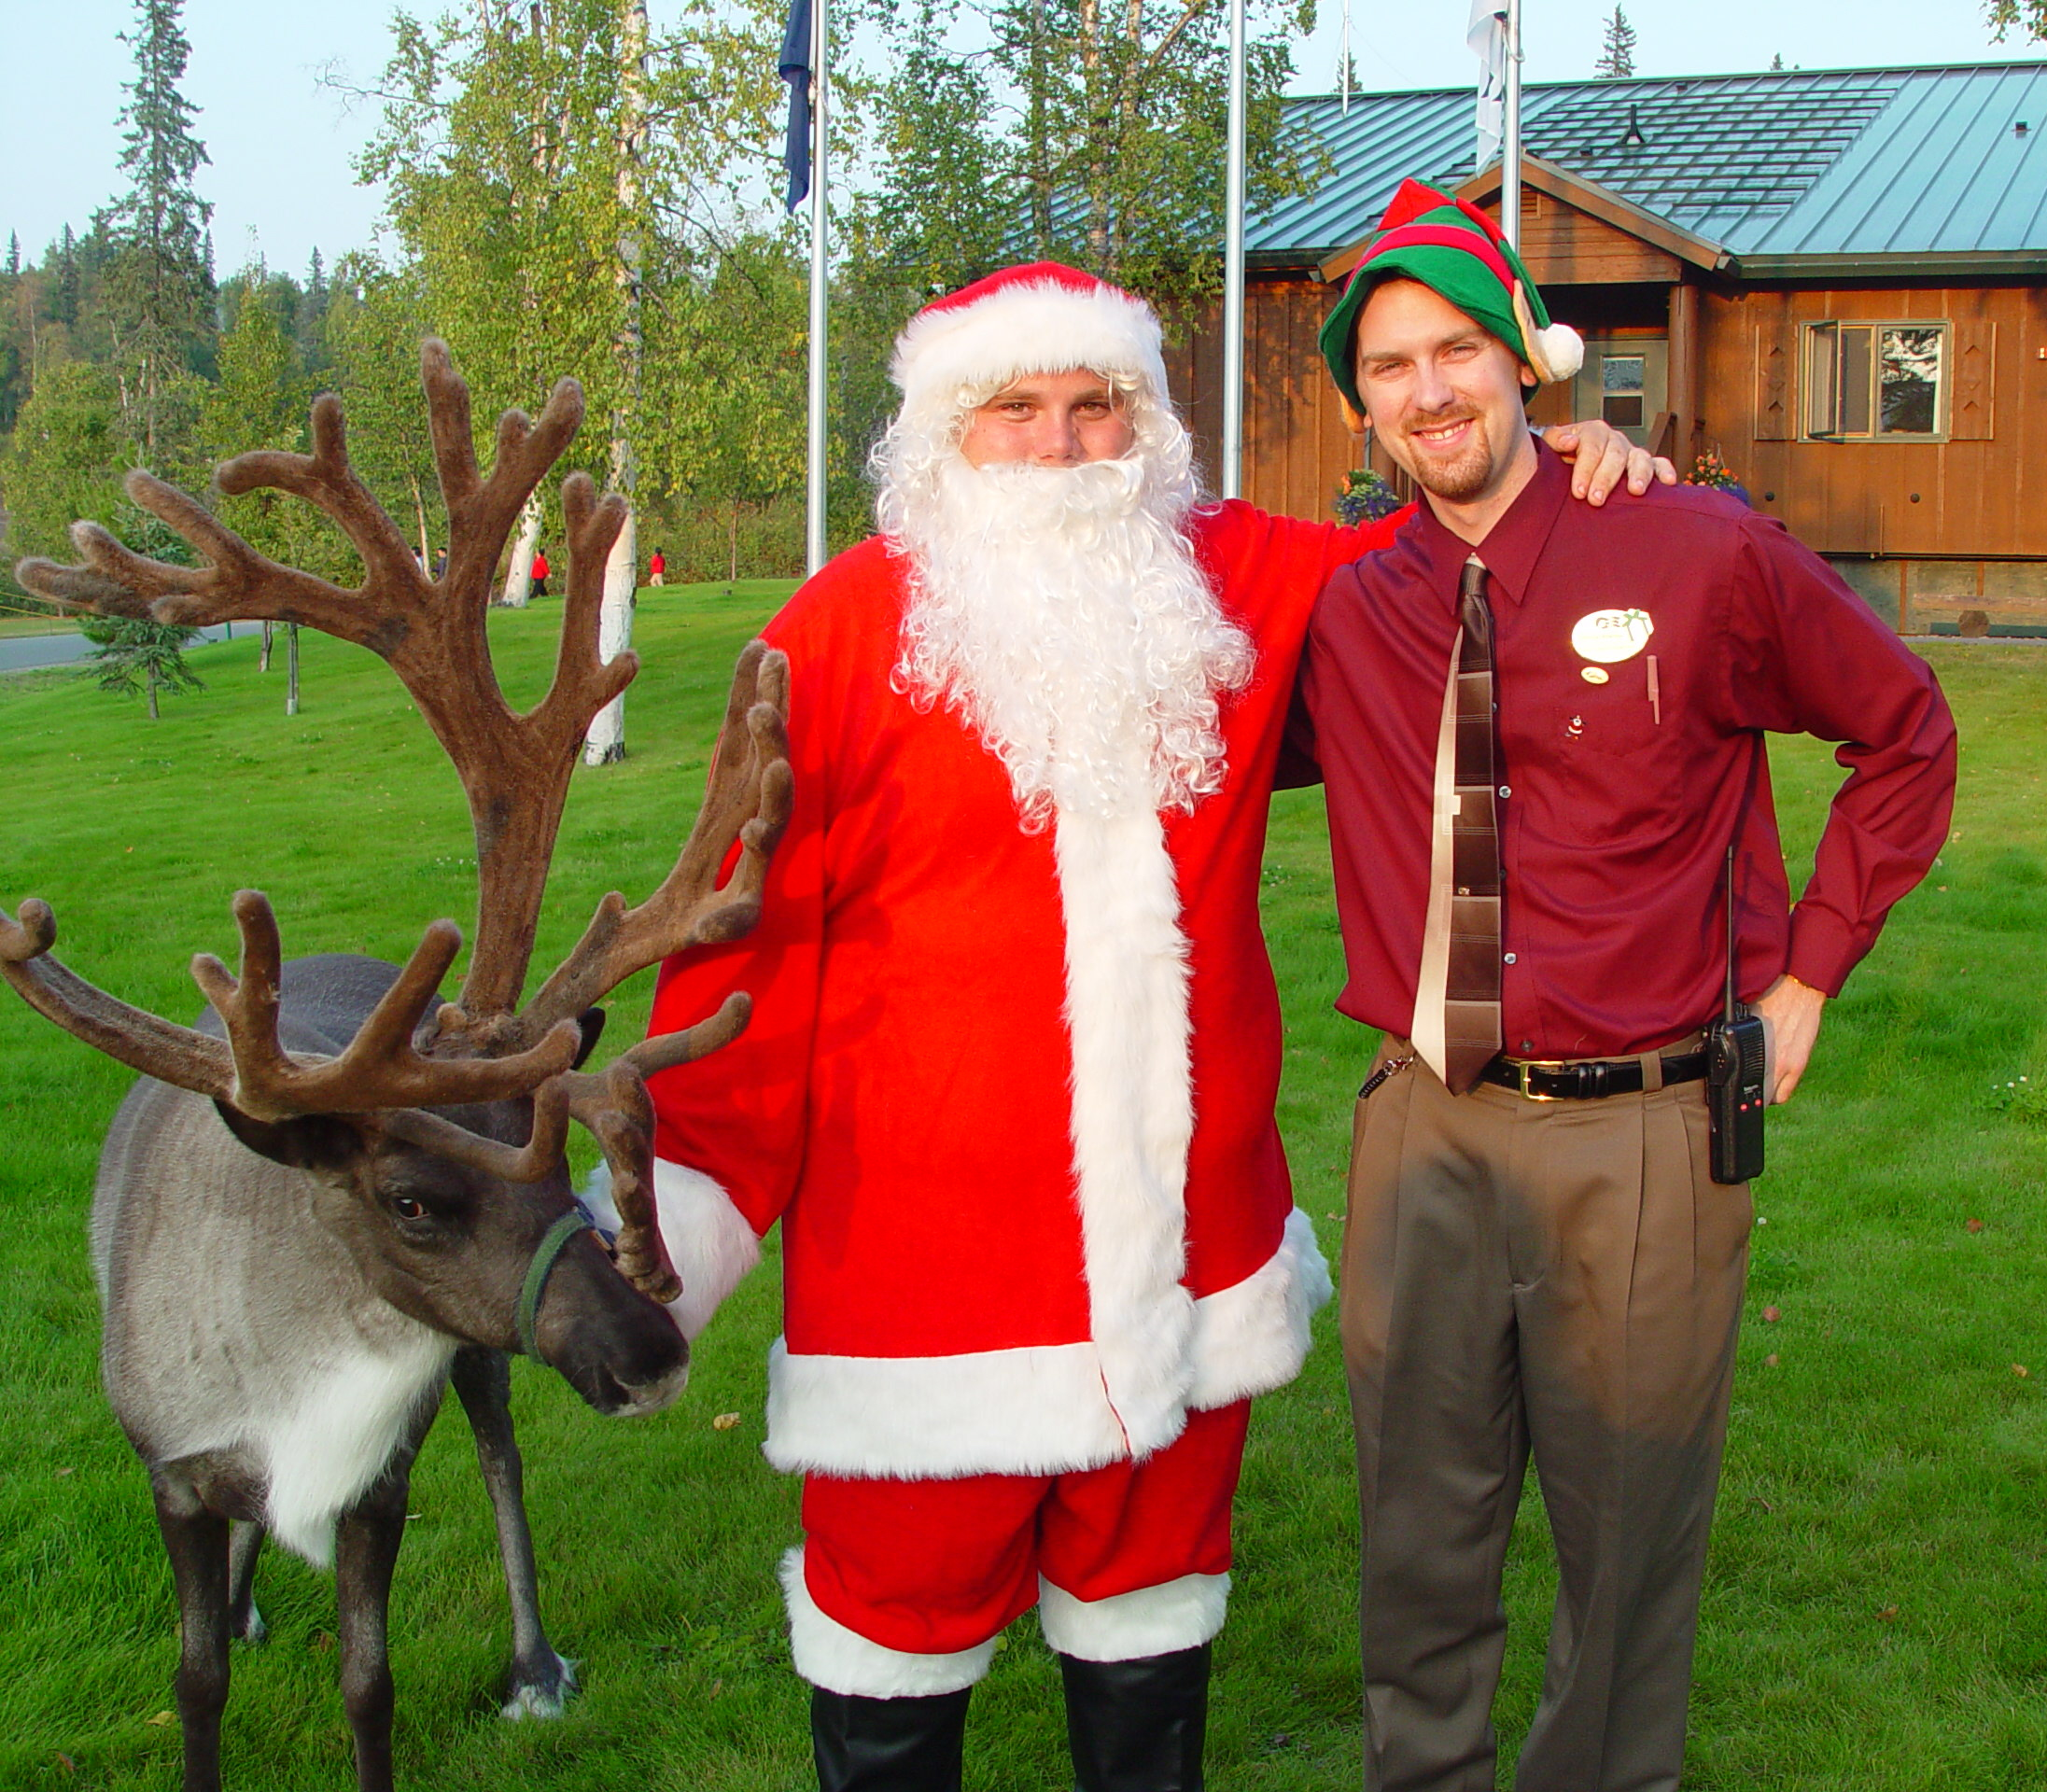 Lodge staff wearing an elf hat posing for a photo with Santa and a reindeer with large, velvety antlers.